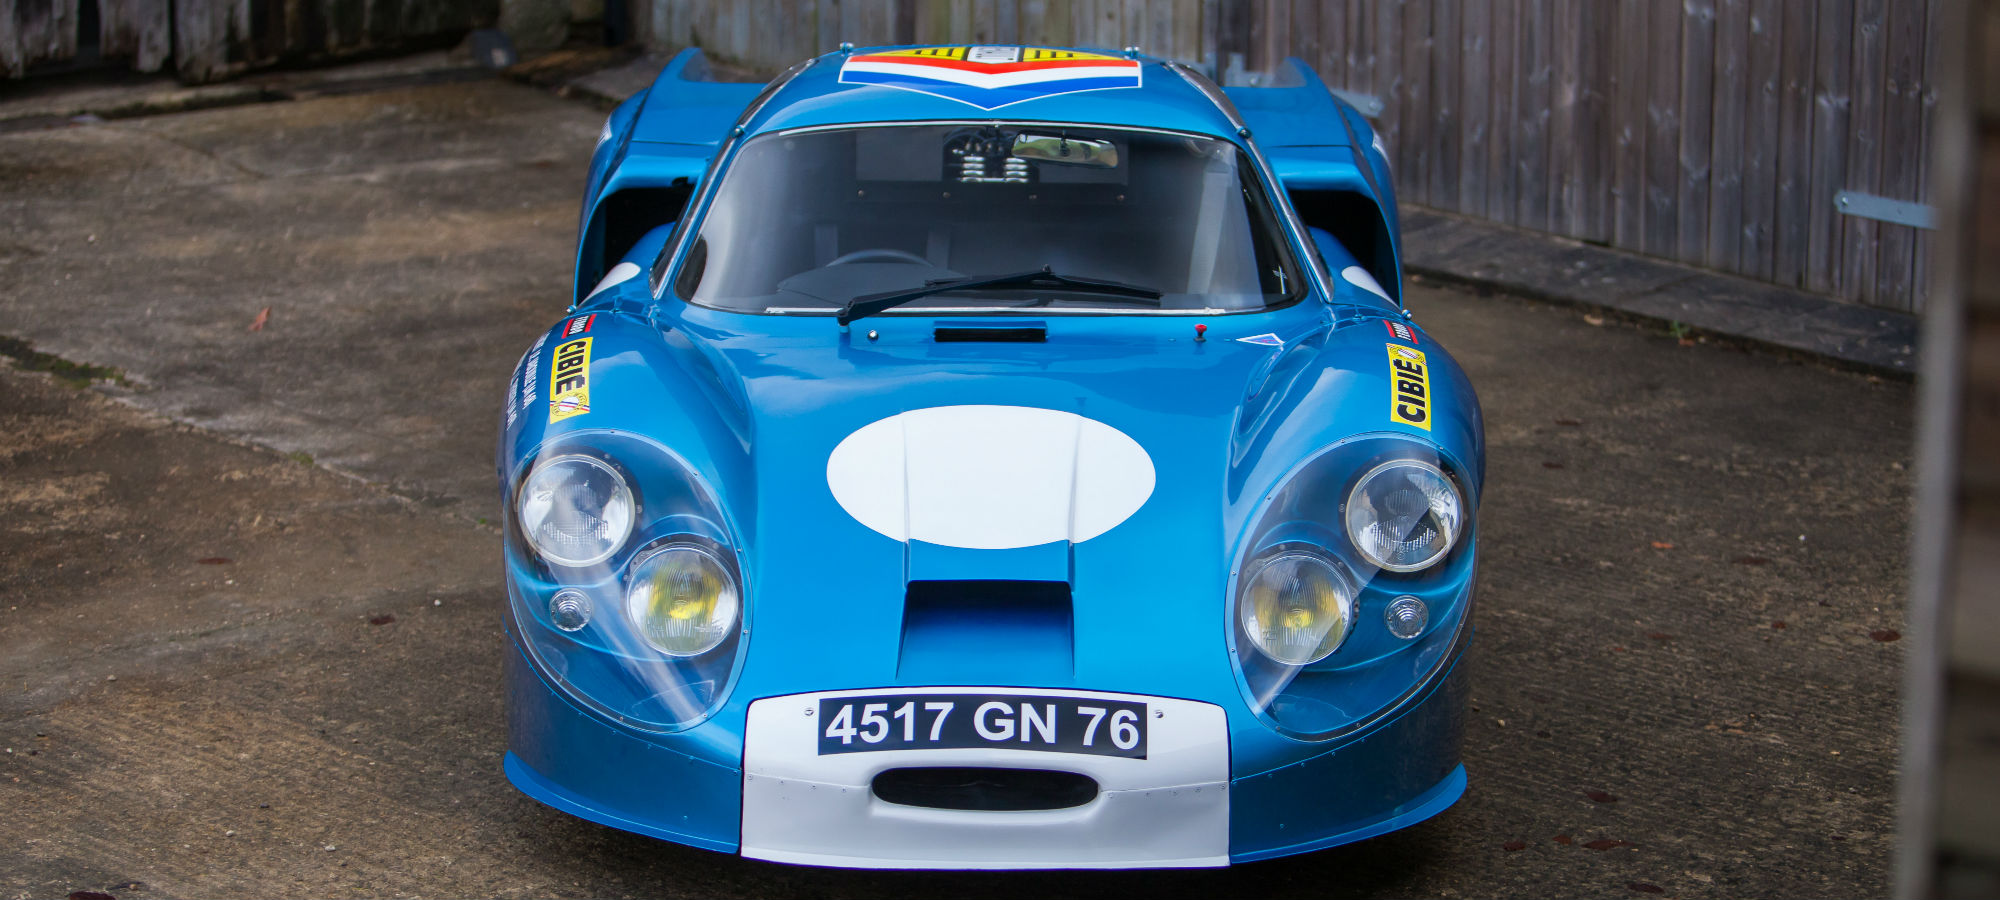 The Ex - Works, Two Time Le Mans Veteran 1968 Alpine A220